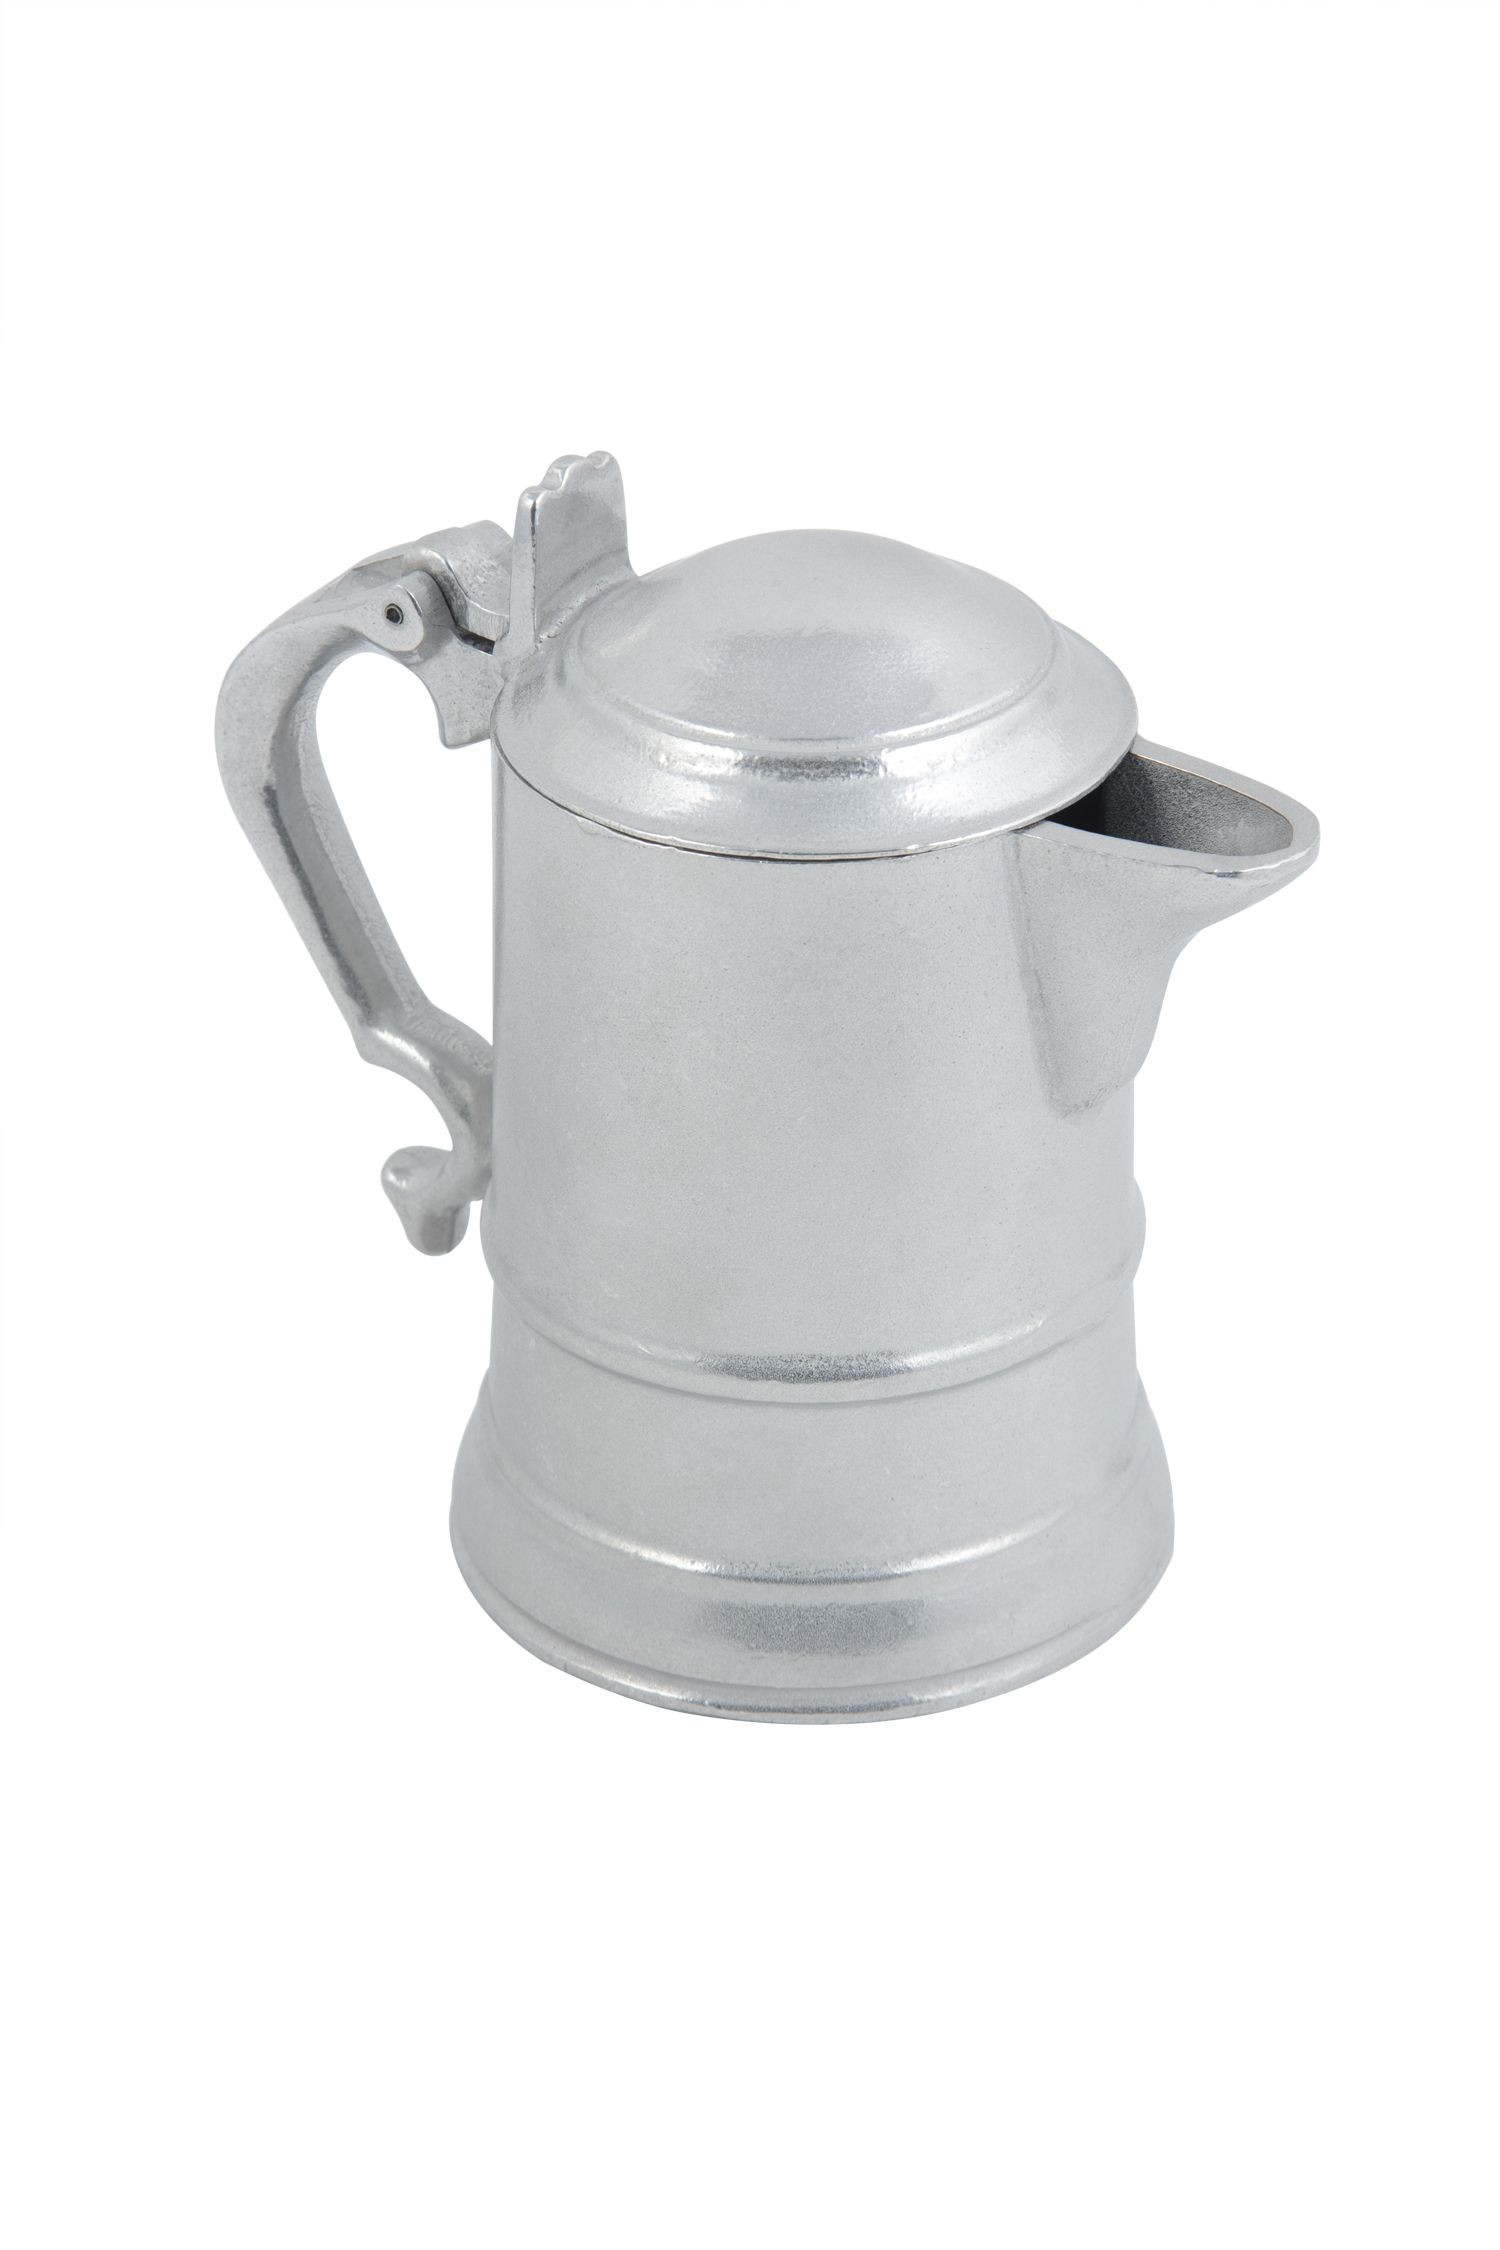 Bon Chef 4009P Coffee Server with Insulated Handle, Pewter Glo 20 oz., Set of 6